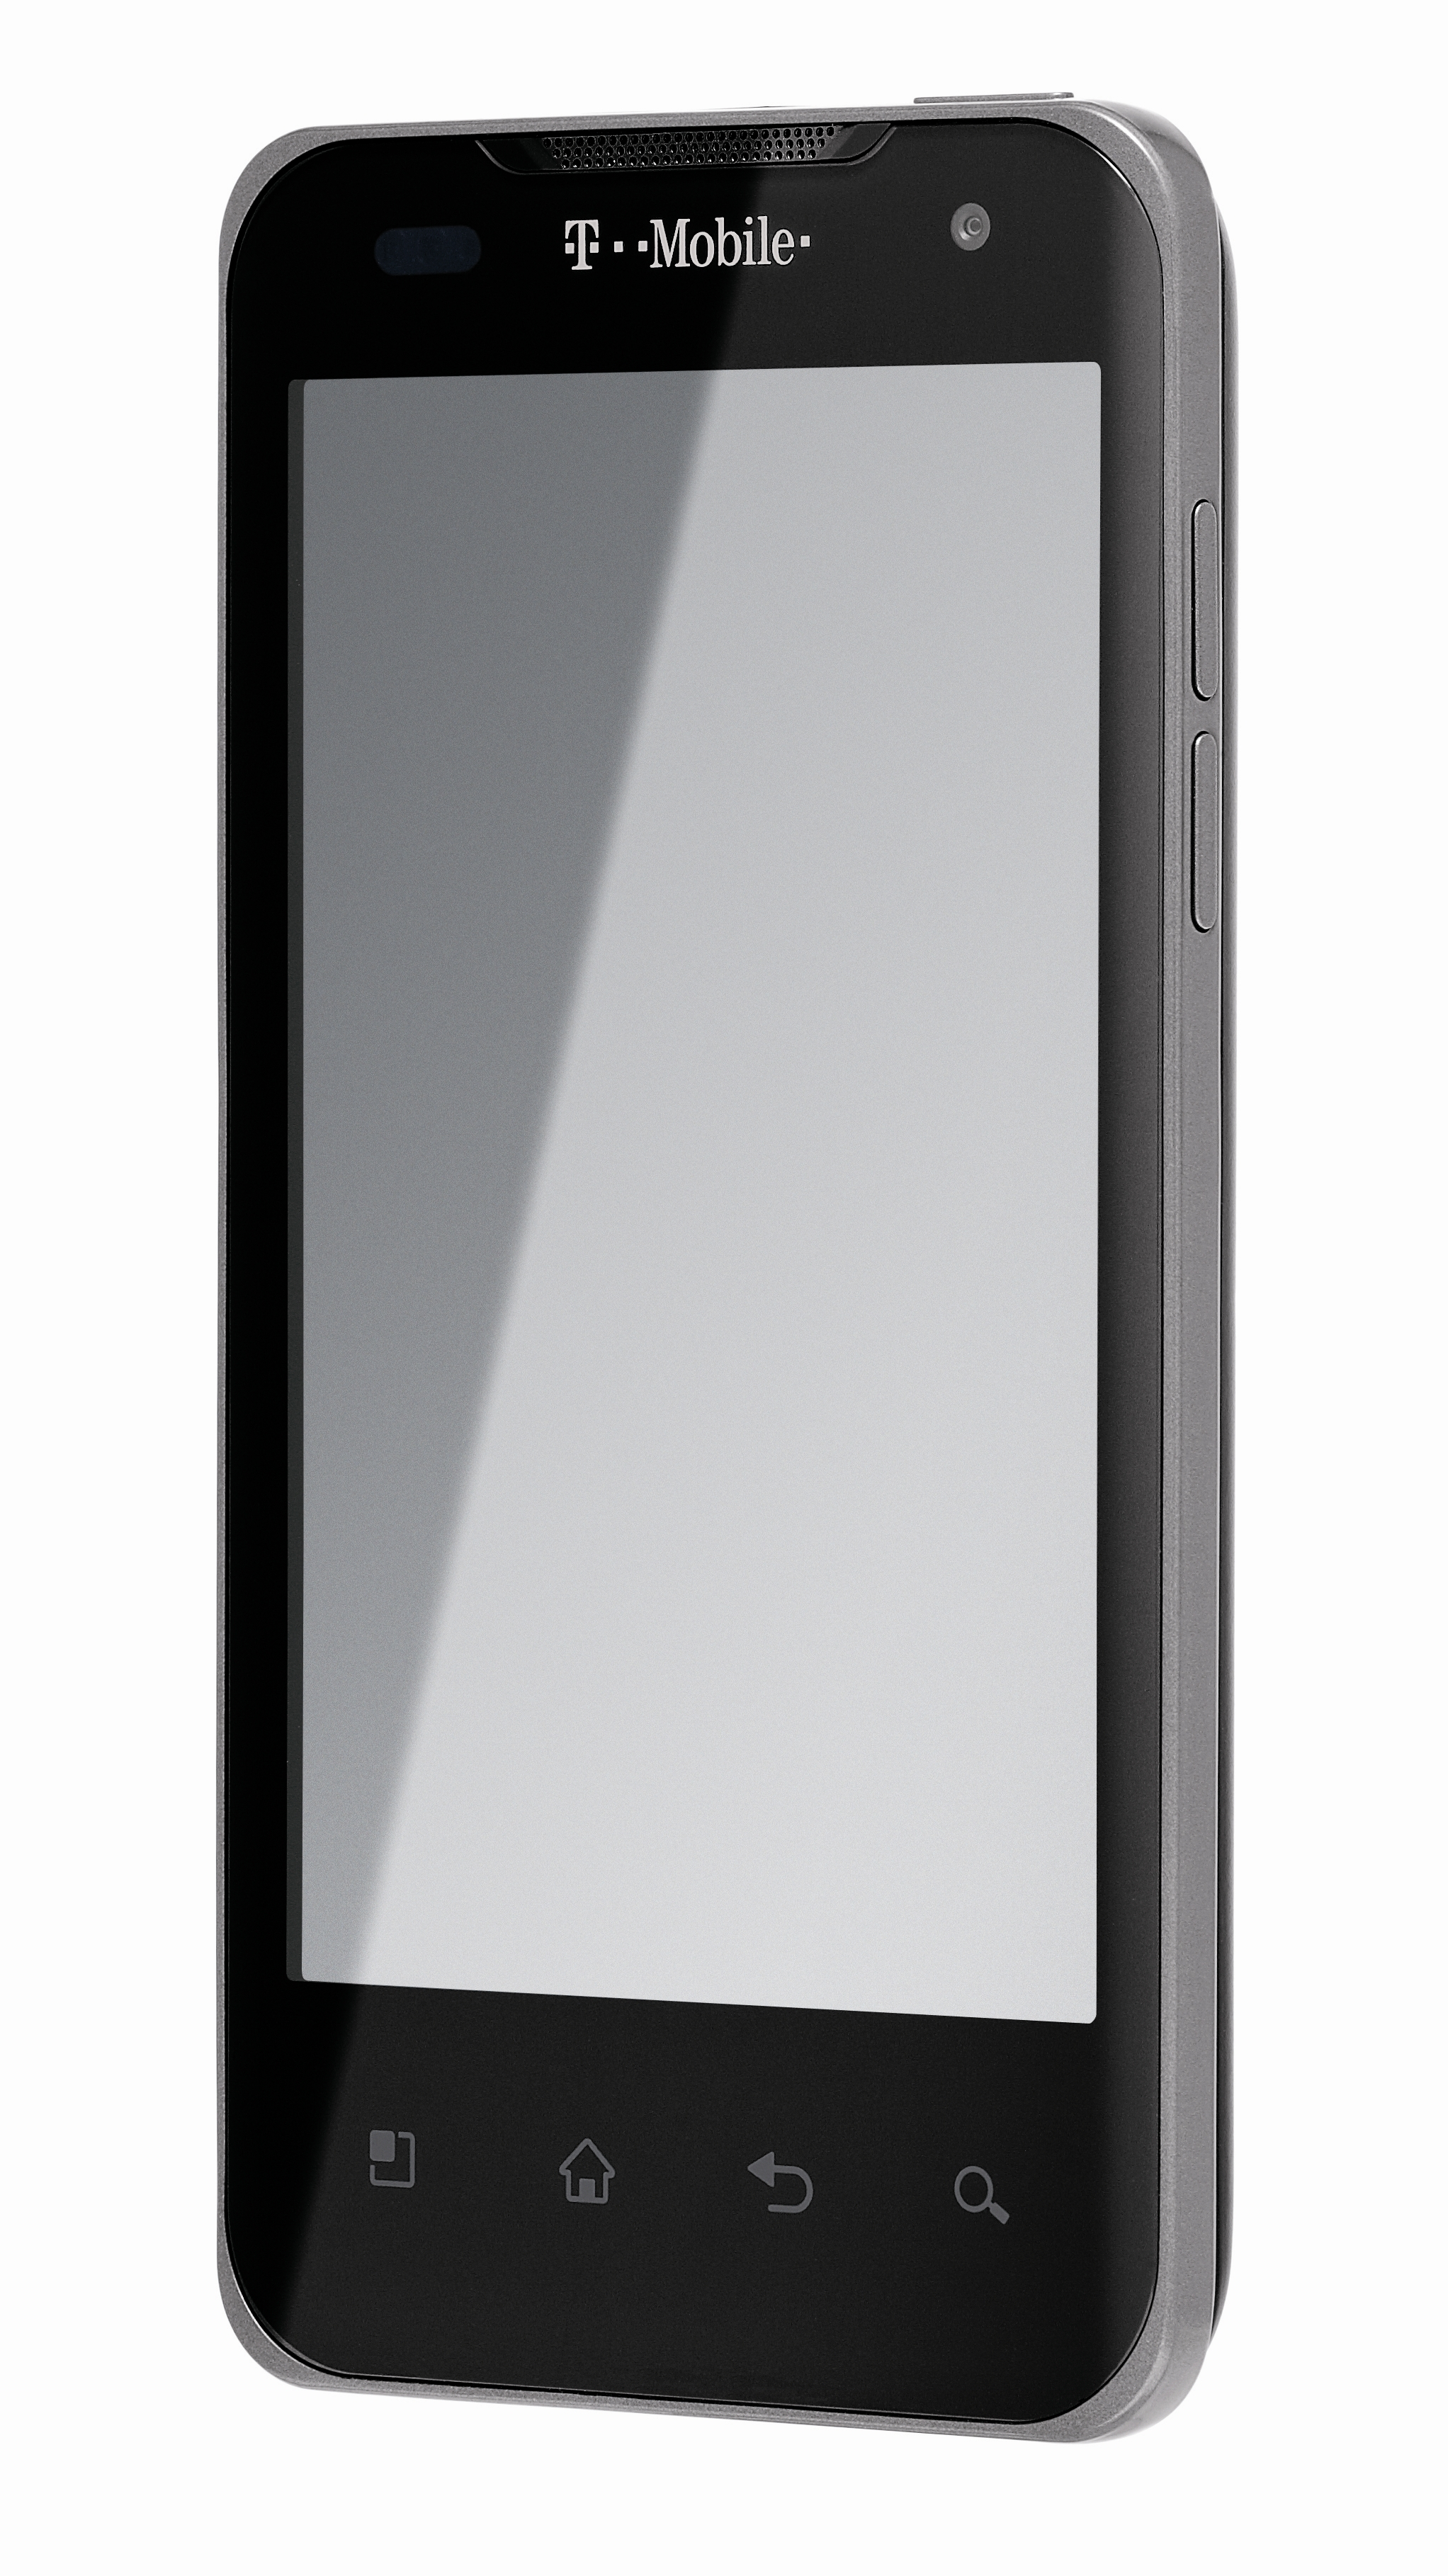 T-Mobile G2X has the Nvidia Tegra 2 dual core processor plus compatibility with T-Mobile's 4G network.